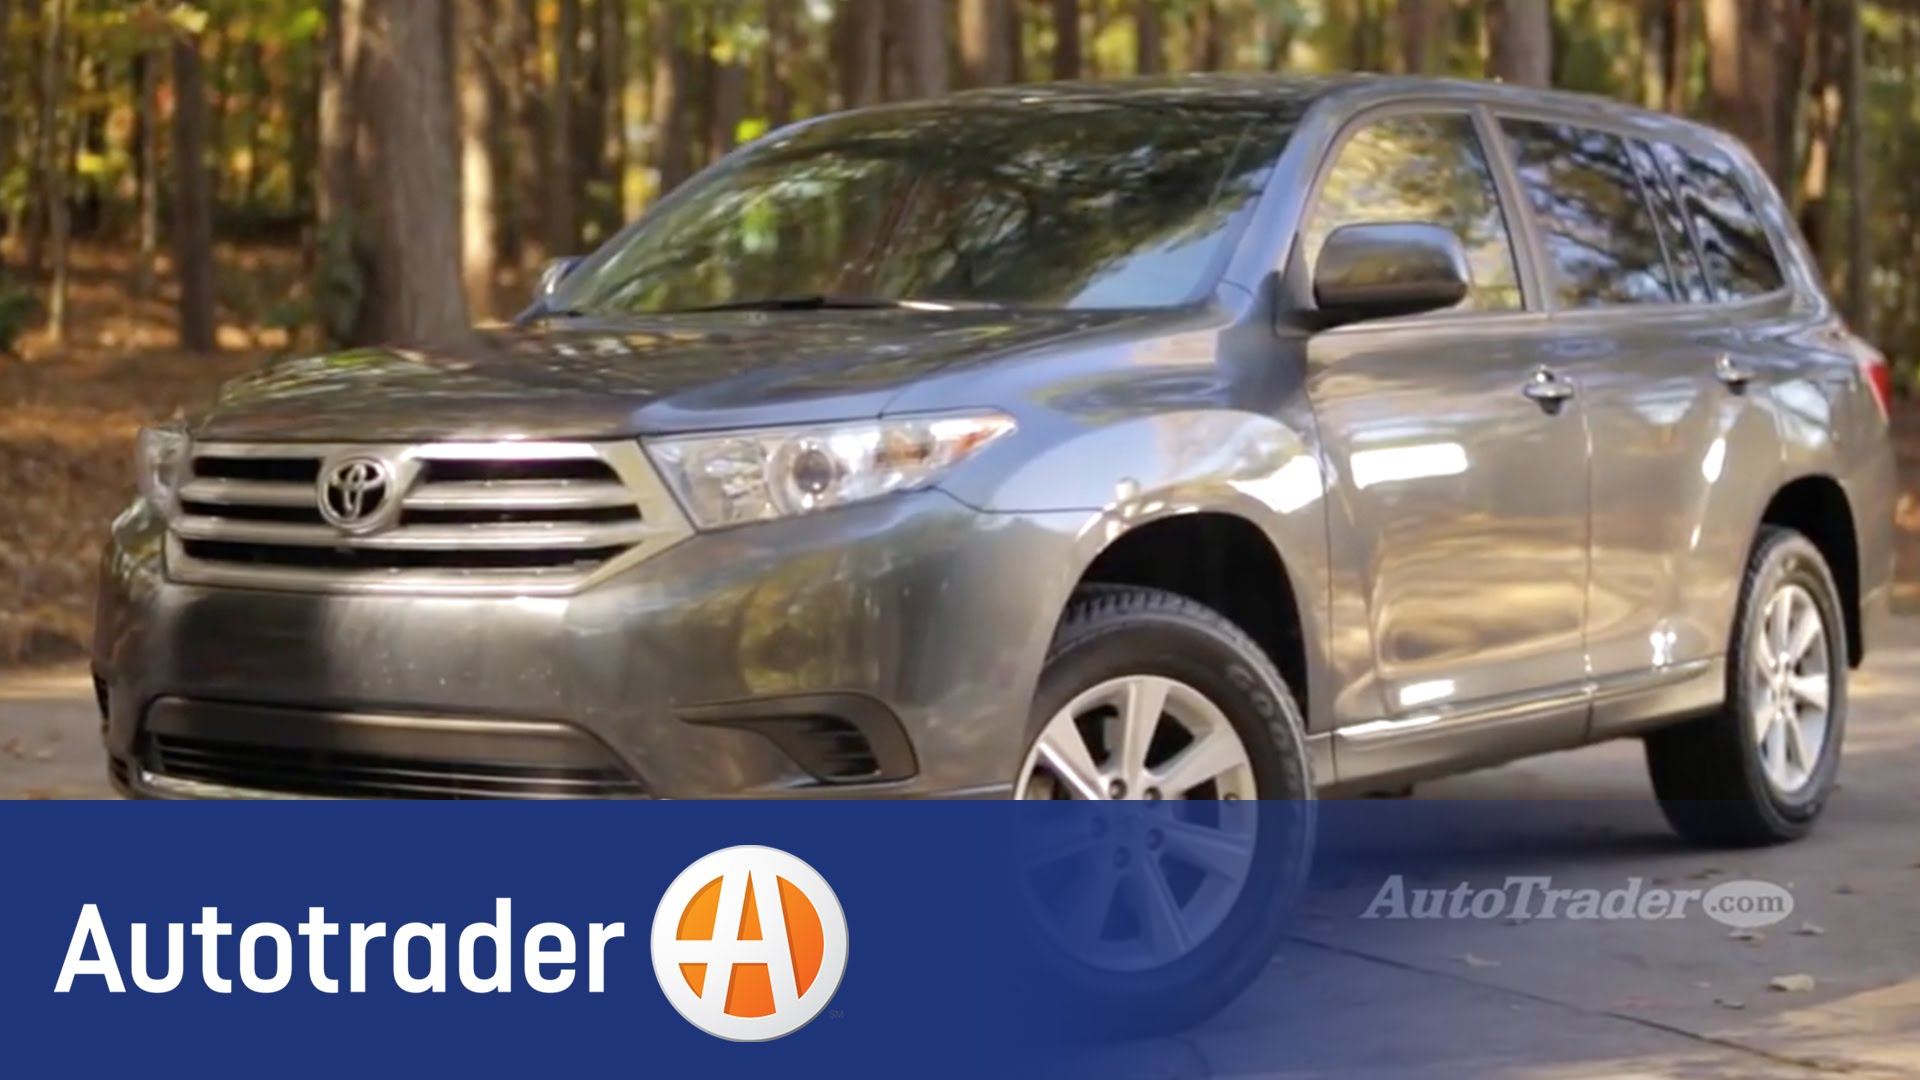 Autotrader Com Used Cars Awesome 2008 2013 toyota Highlander Used Car Review